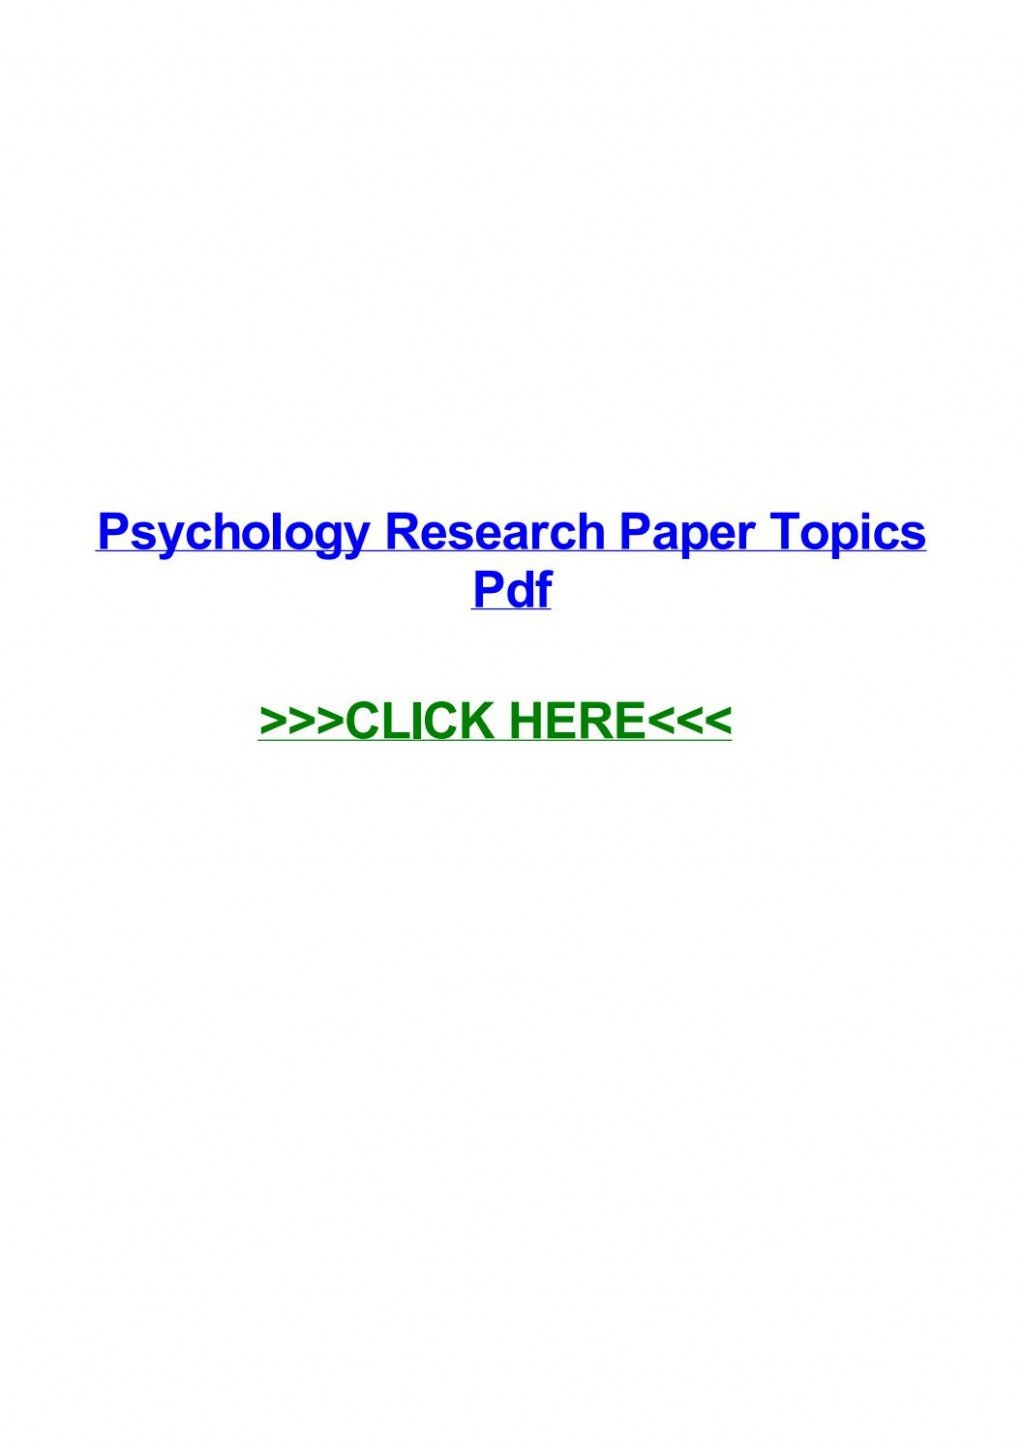 015 Psychology Research Paper Topics Pdf Page 1 Best Large